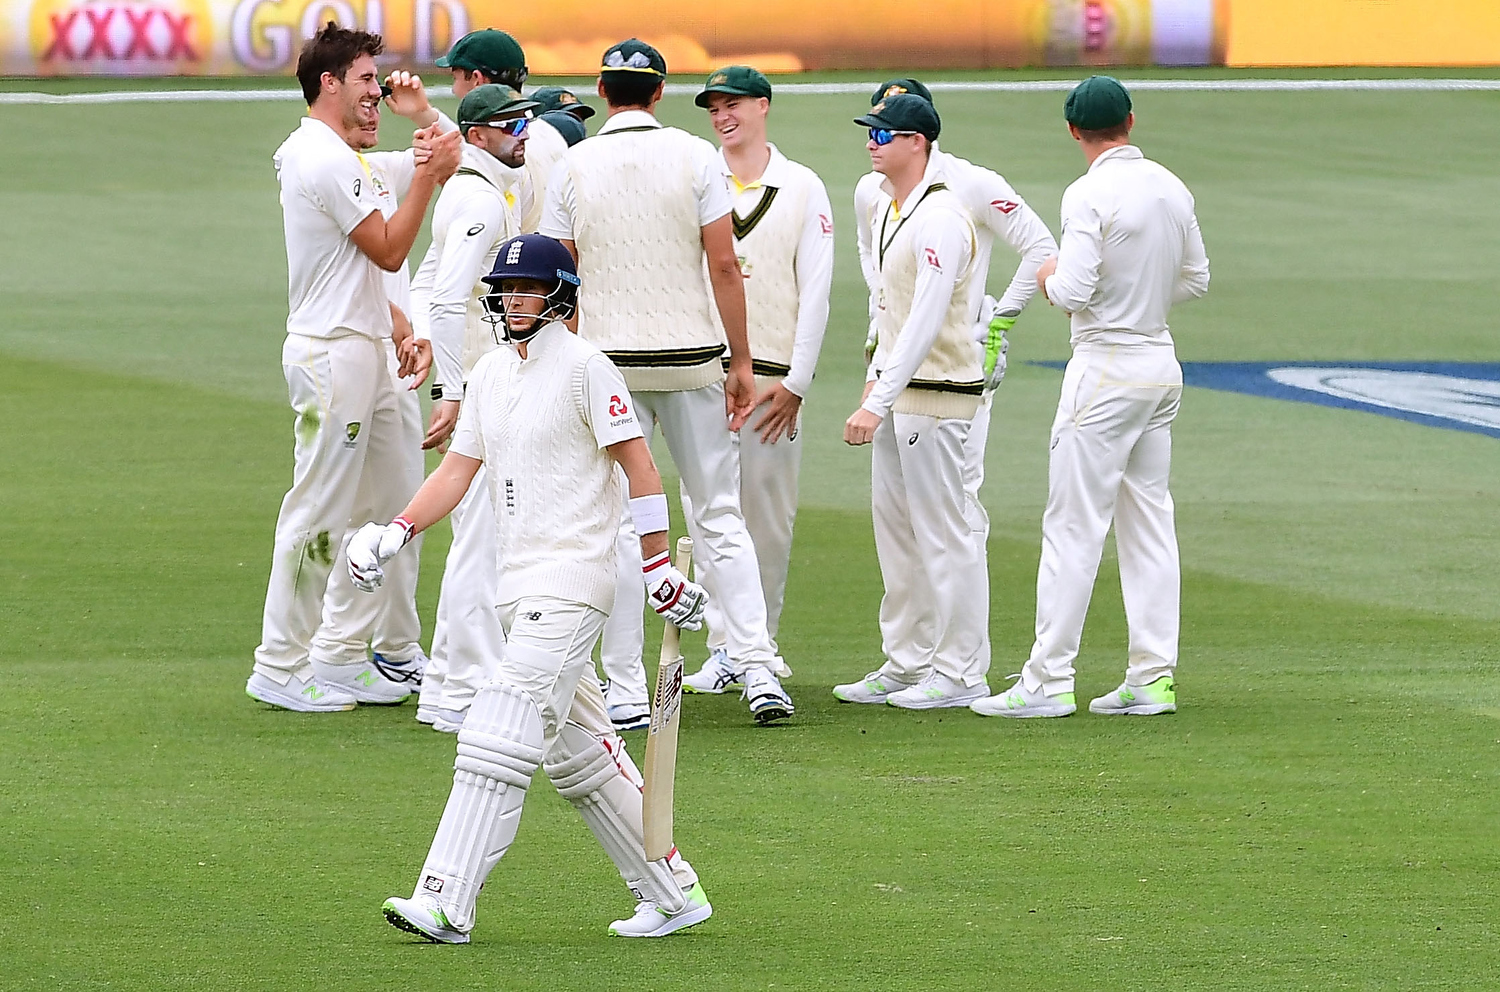 Australia celebrates after taking the wicket of Joe Root Pic Mark Brake- CA  Cricket Australia  Getty Images